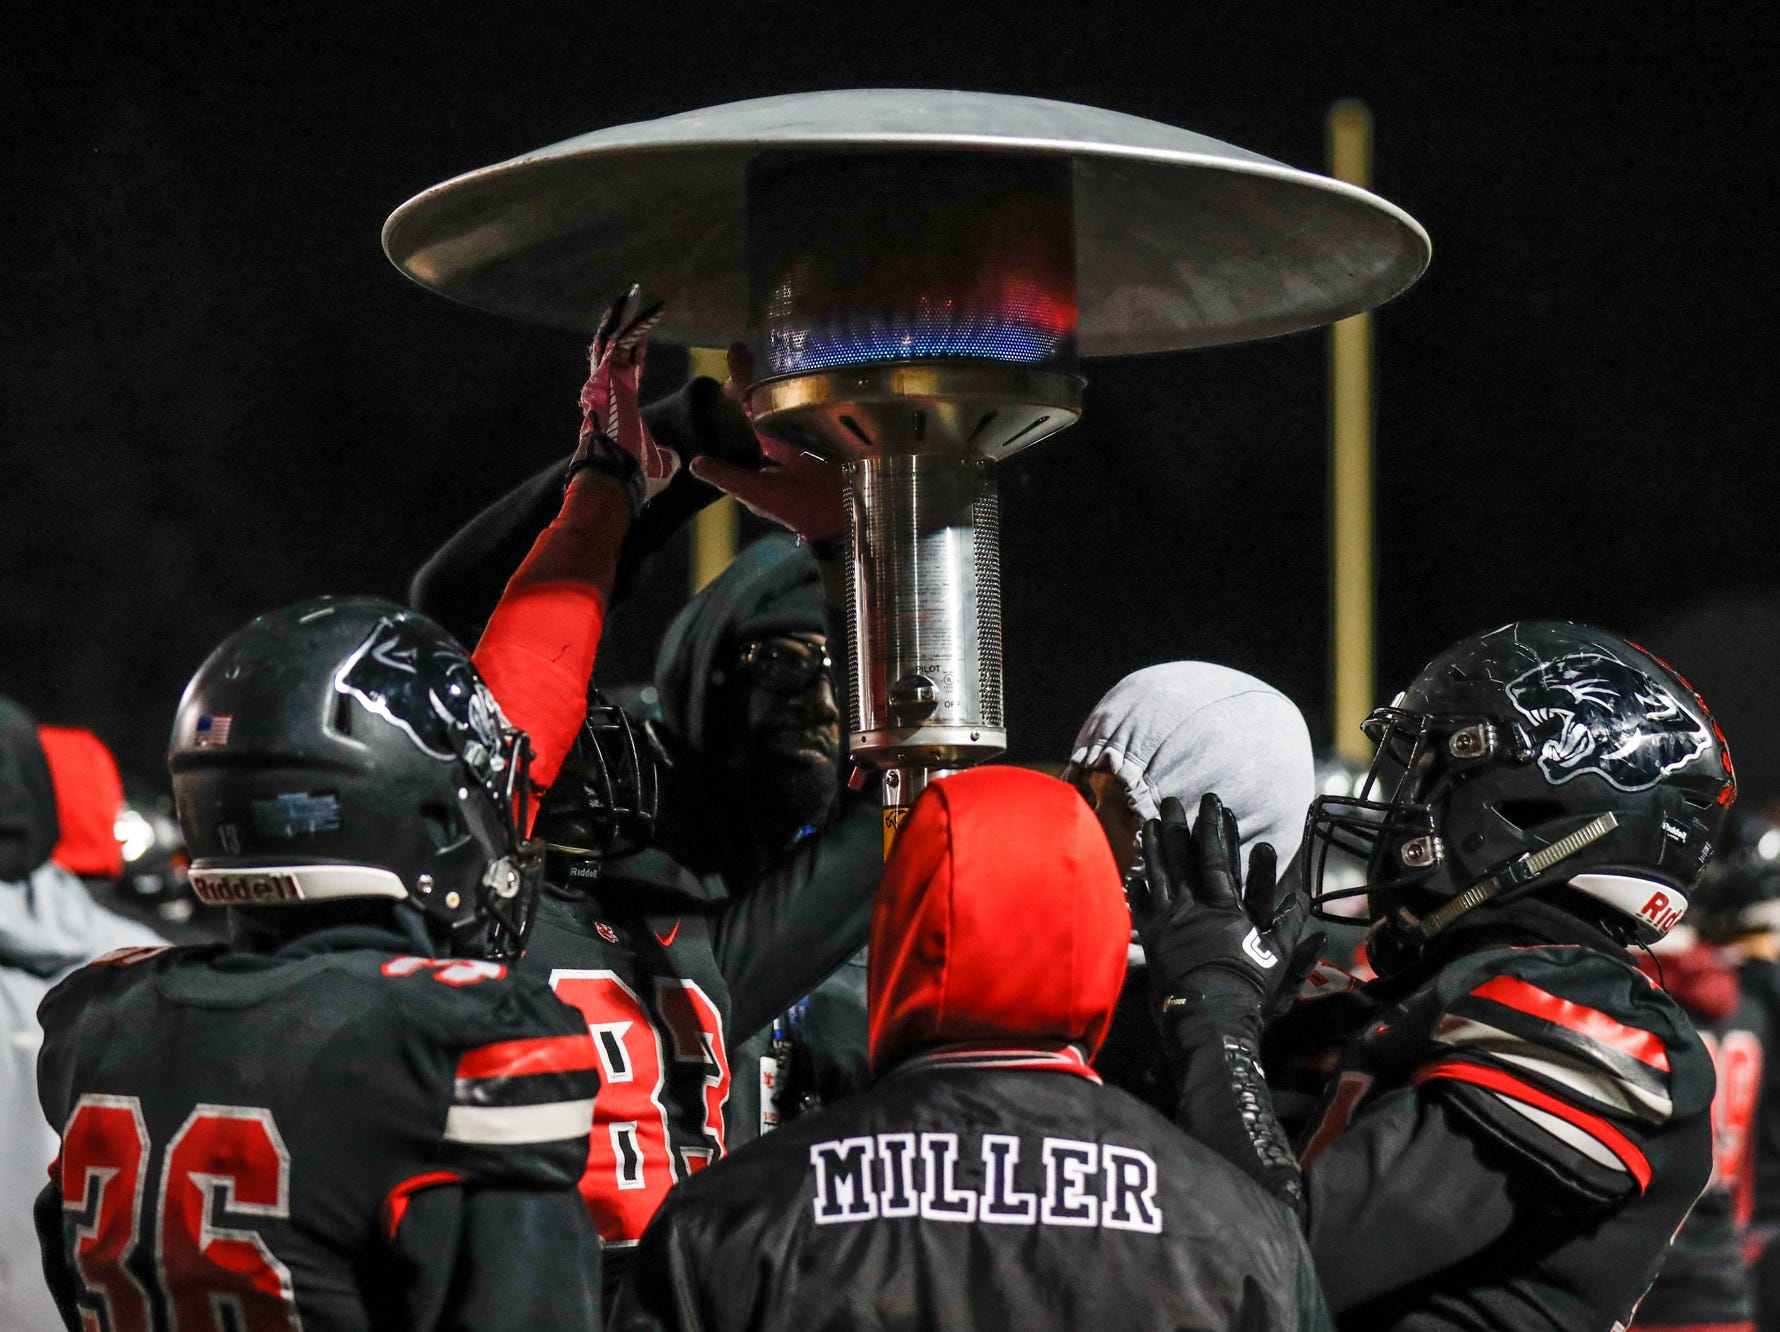 North Central High School Panthers football players warm their hands  during a regional finals game against the Warren Central High School Warriors at North Central High School on Friday, Nov. 9, 2018.